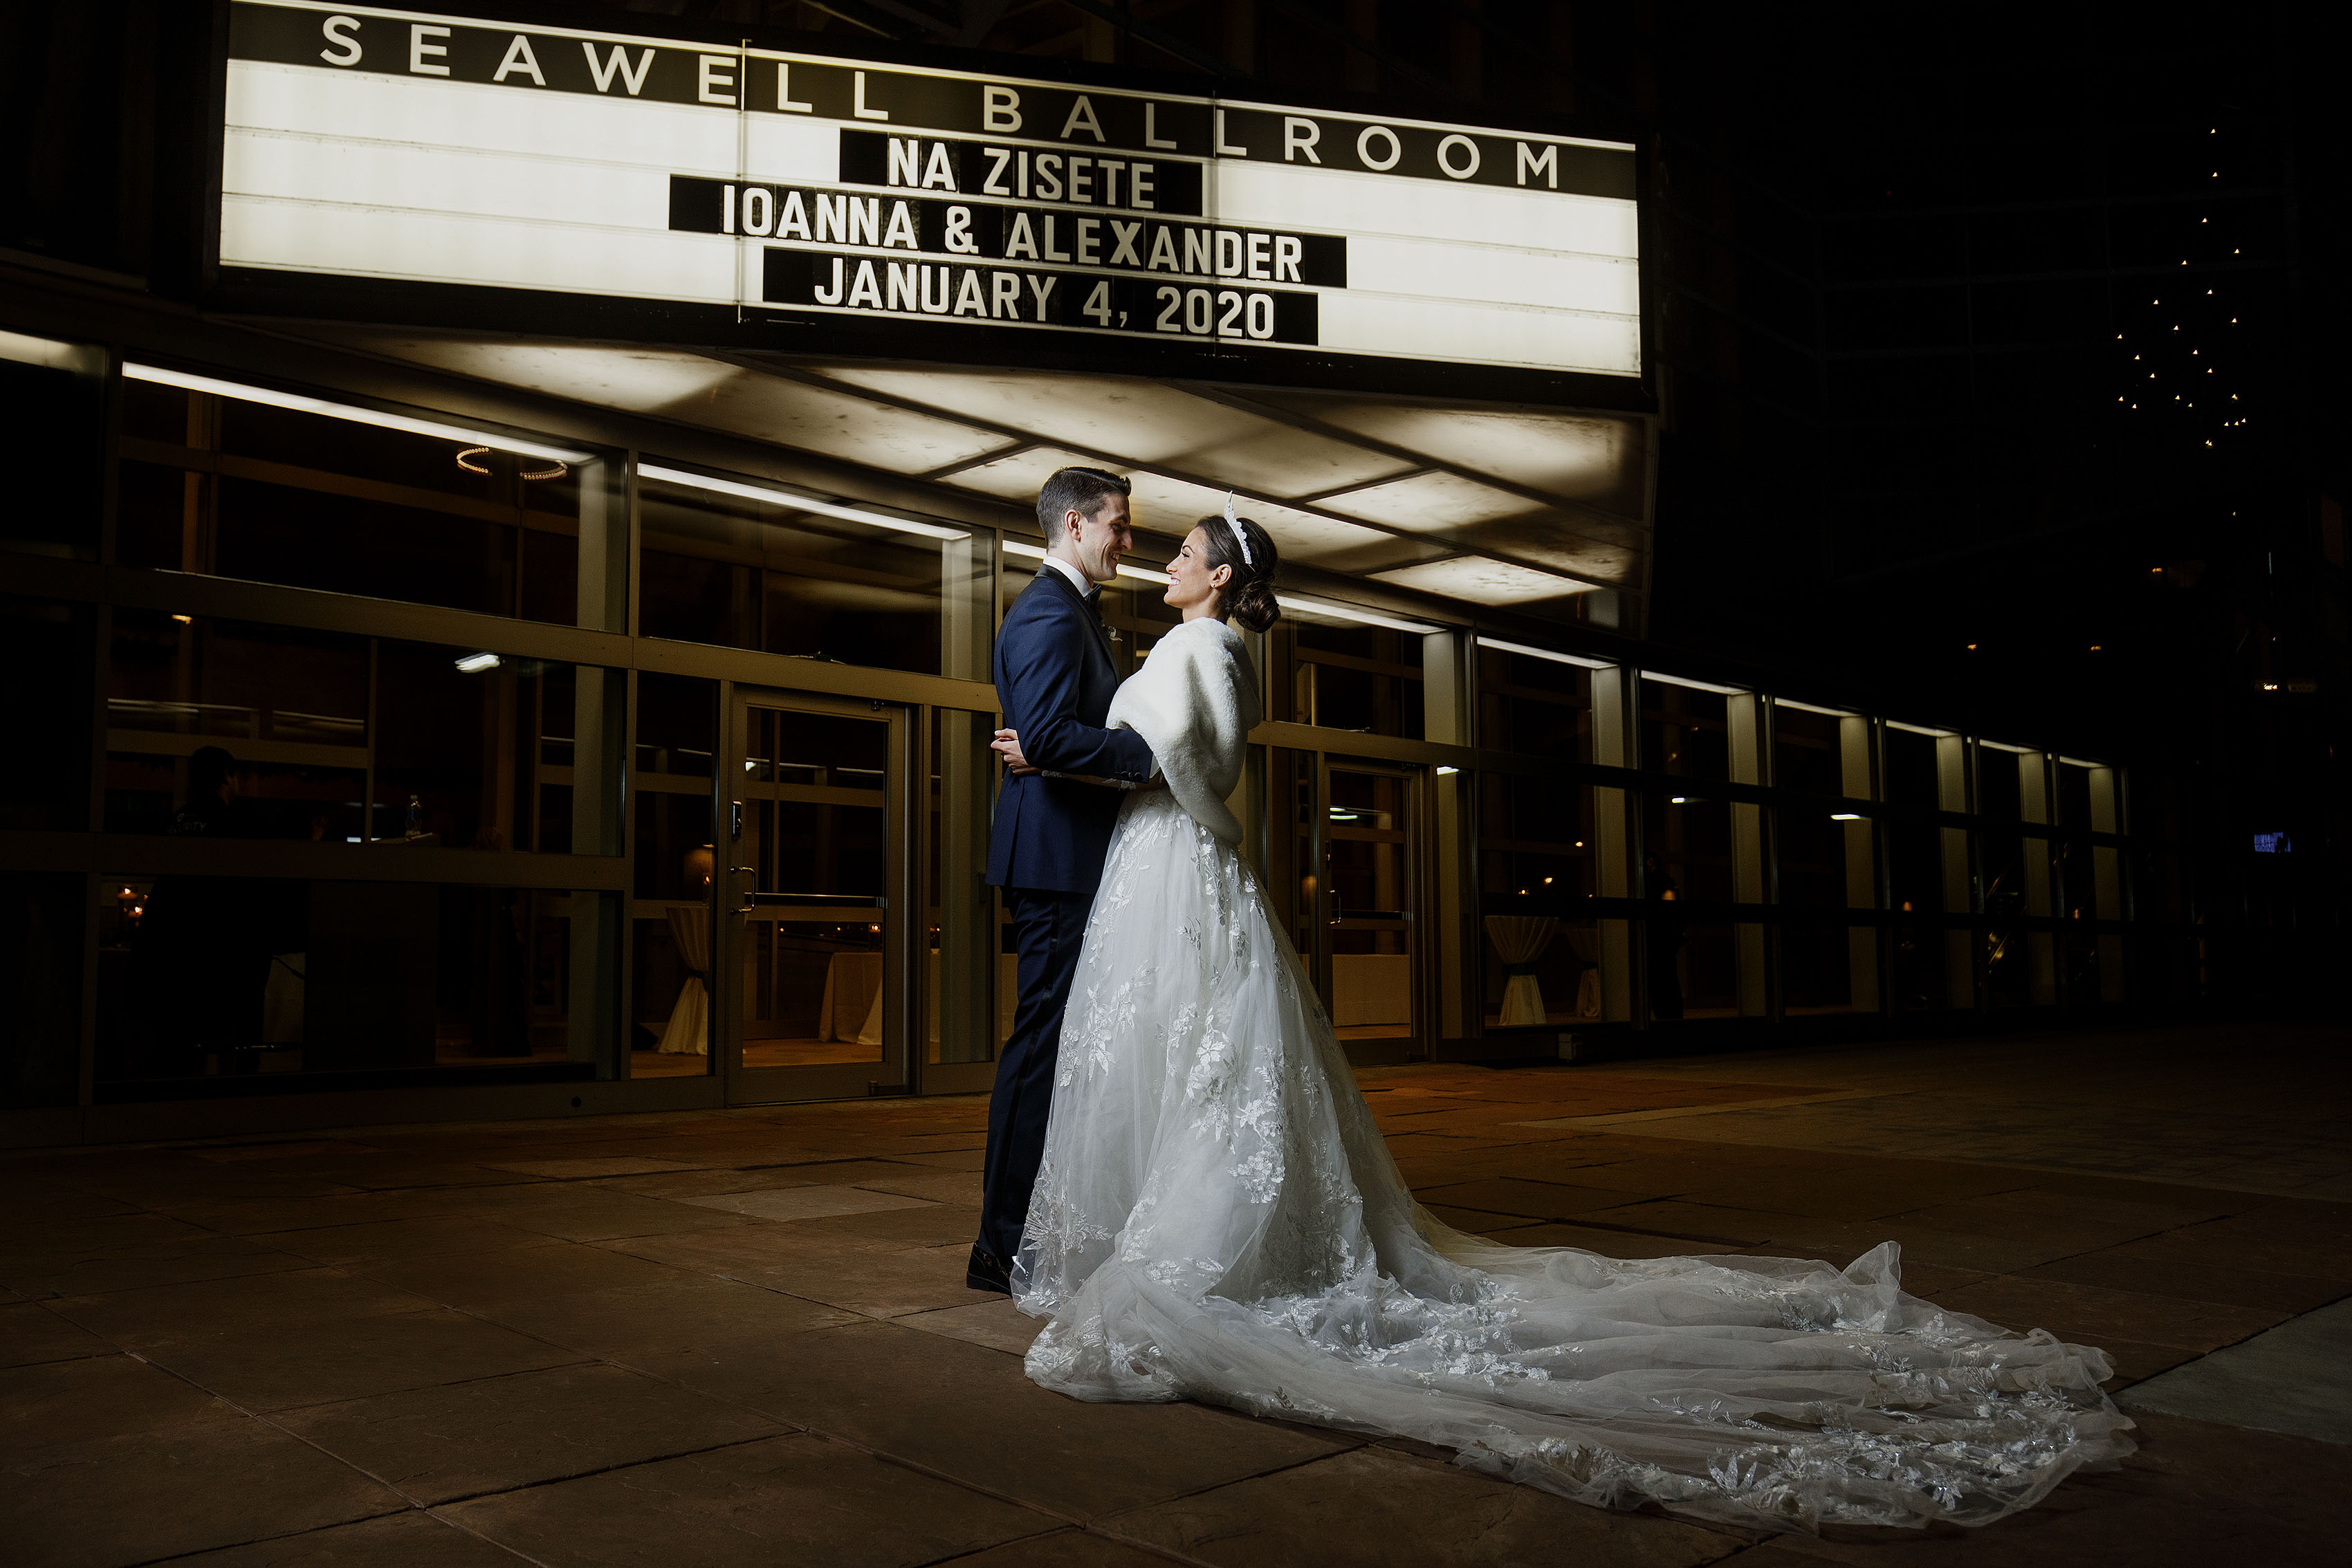 The bride and groom pose outside the marquee at Seawell Ballroom at the Denver Center for the Performing Arts